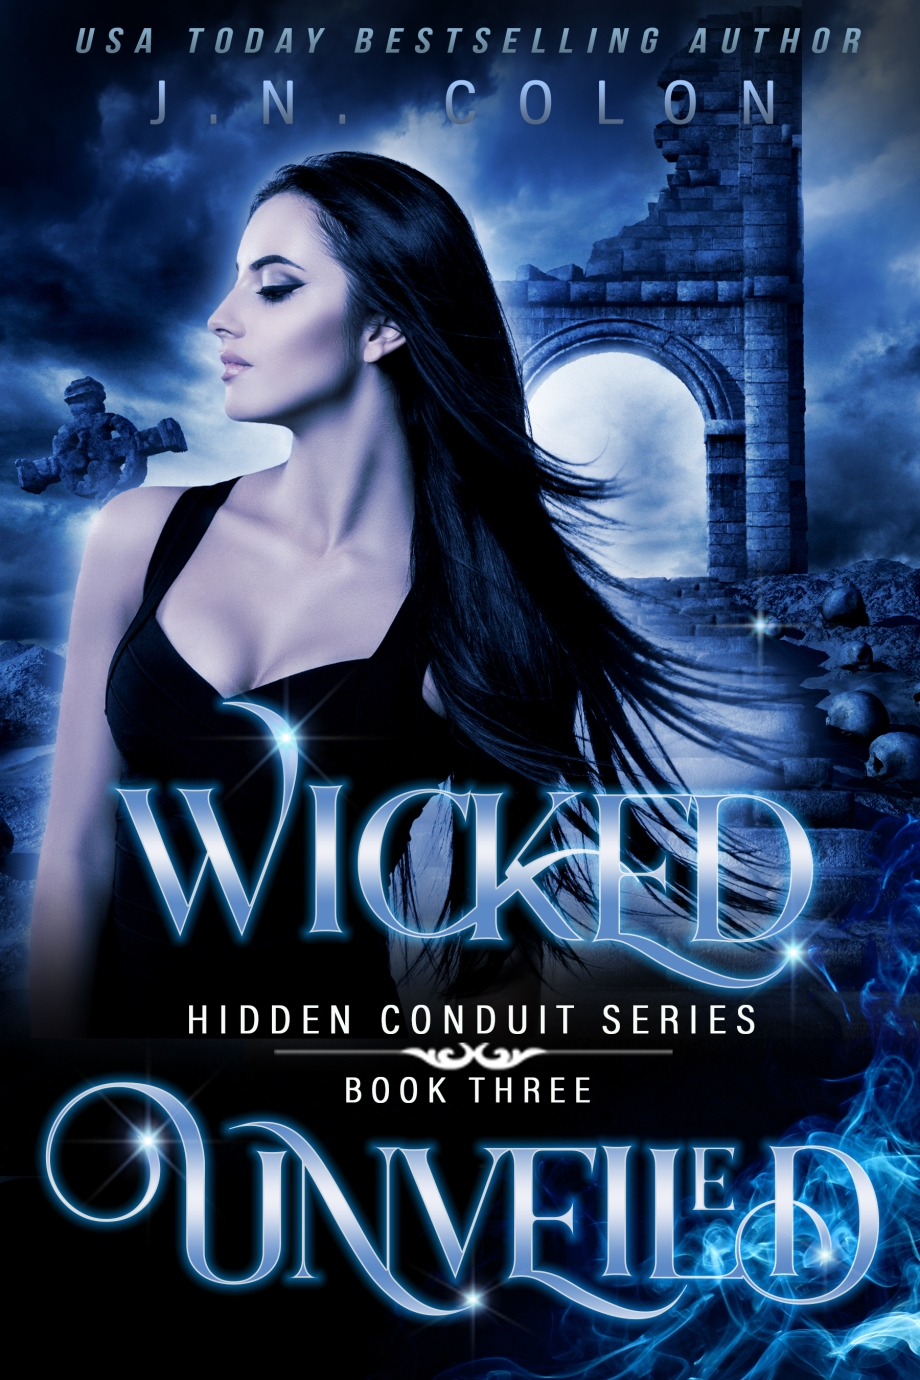 Wicked Unveiled